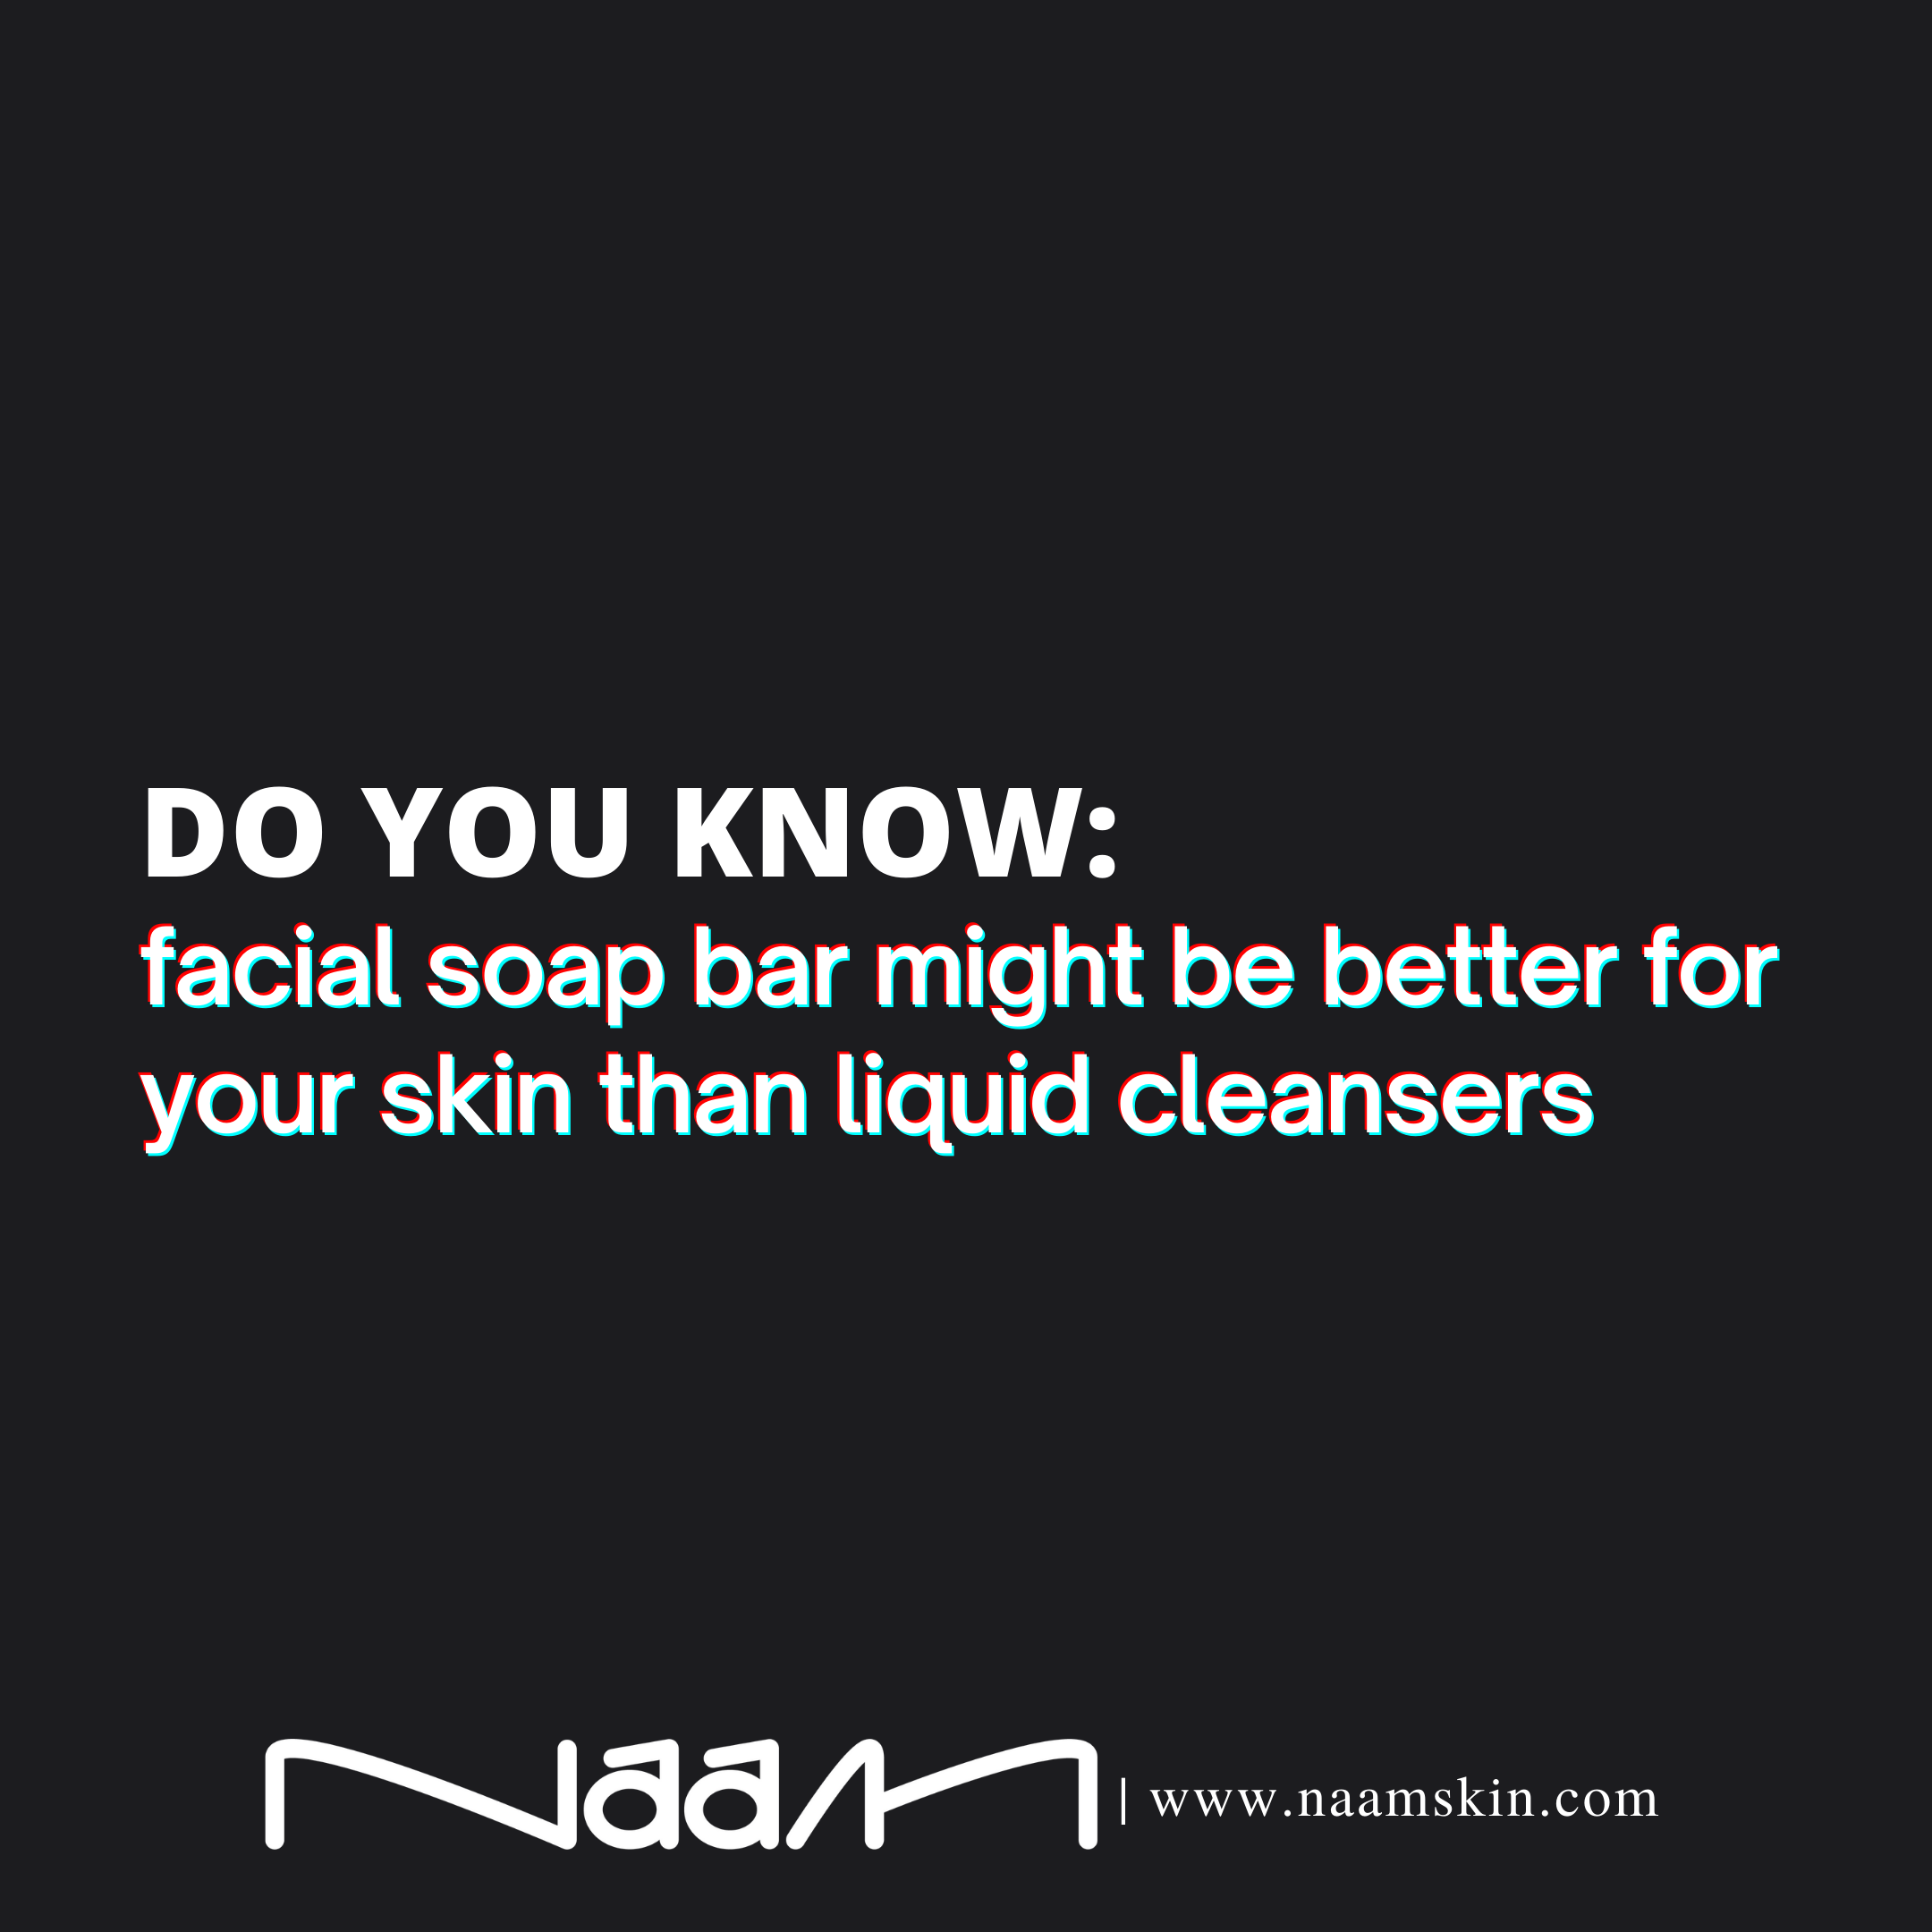 Do You Know: Facial Soap Bar Might Be Better For Your Skin Than Liquid Cleansers